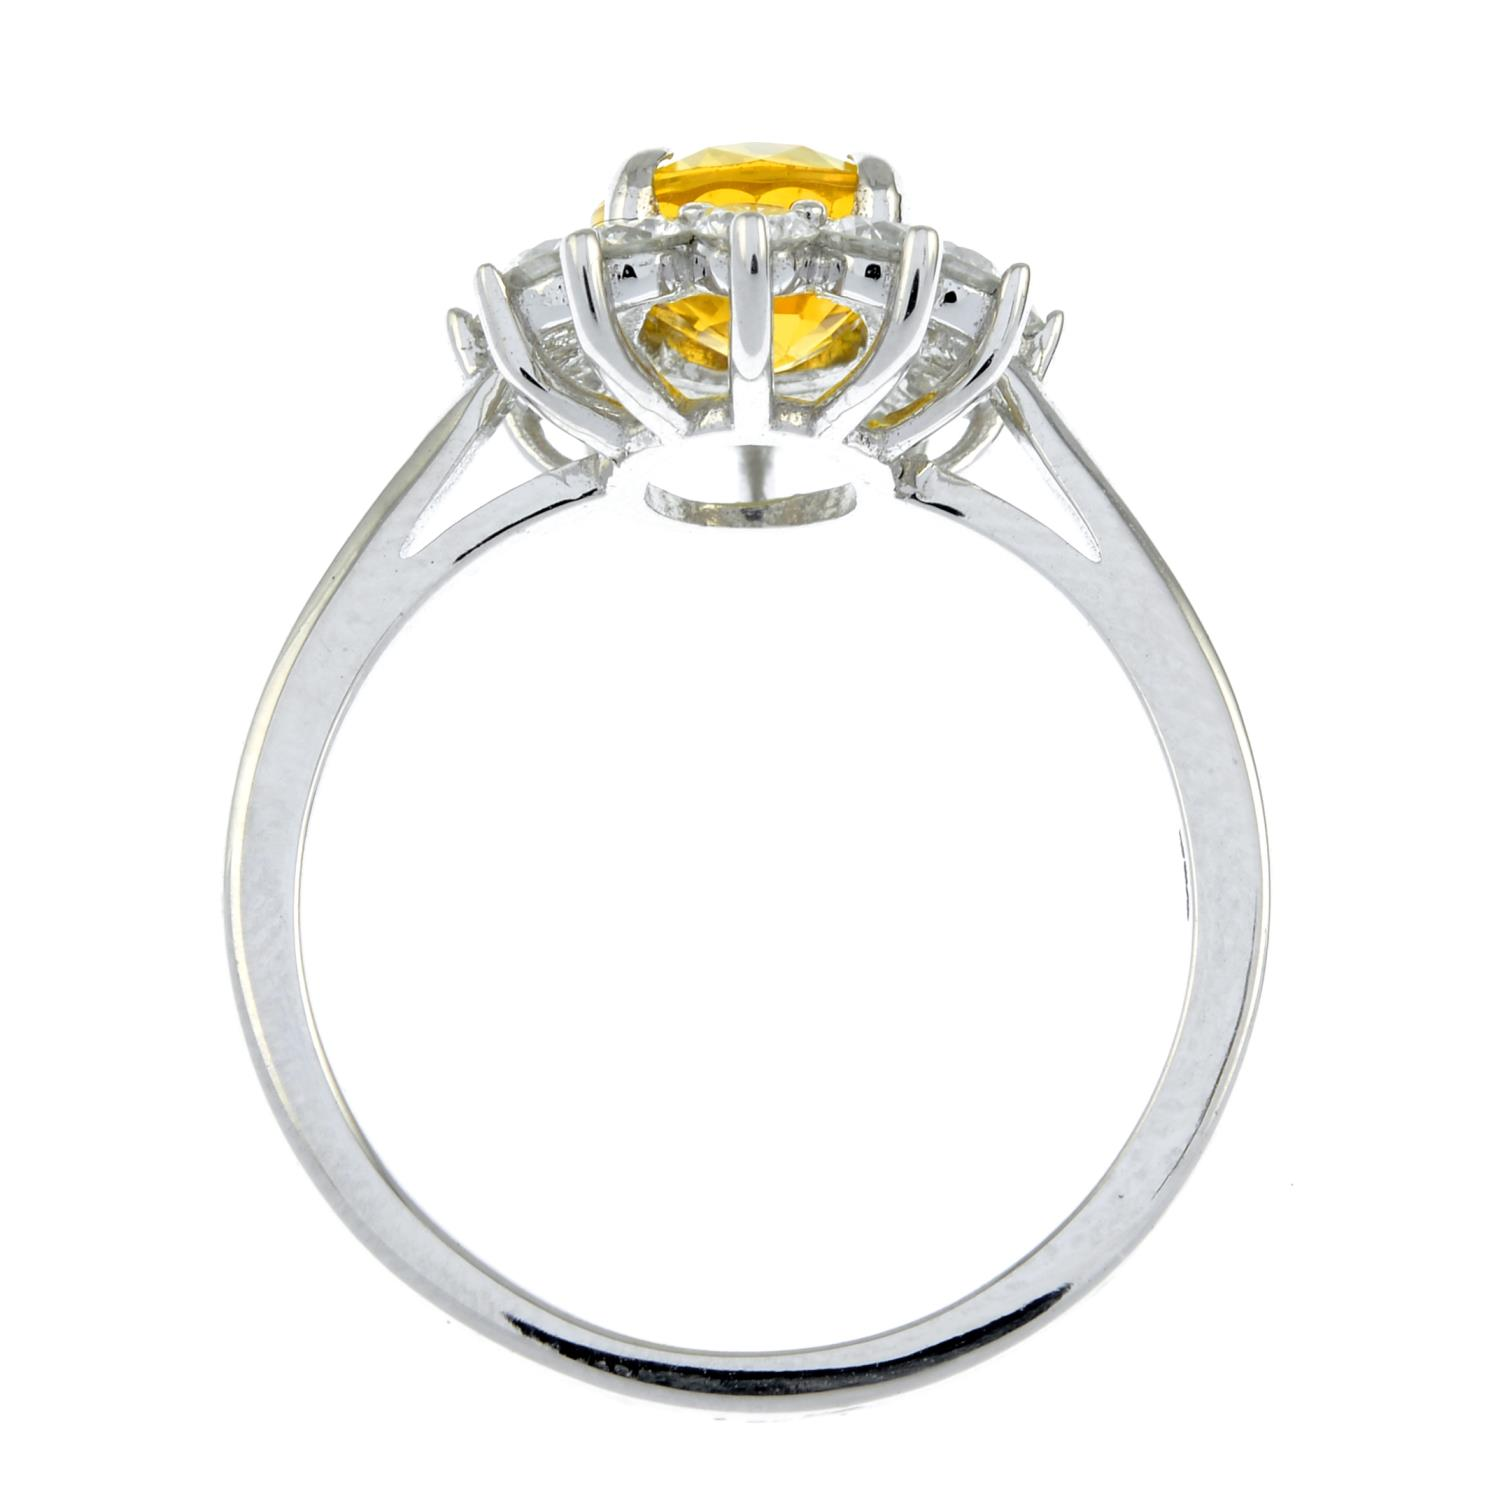 A yellow sapphire and brilliant-cut diamond cluster ring.Sapphire calculated weight 1.73cts, - Image 6 of 6